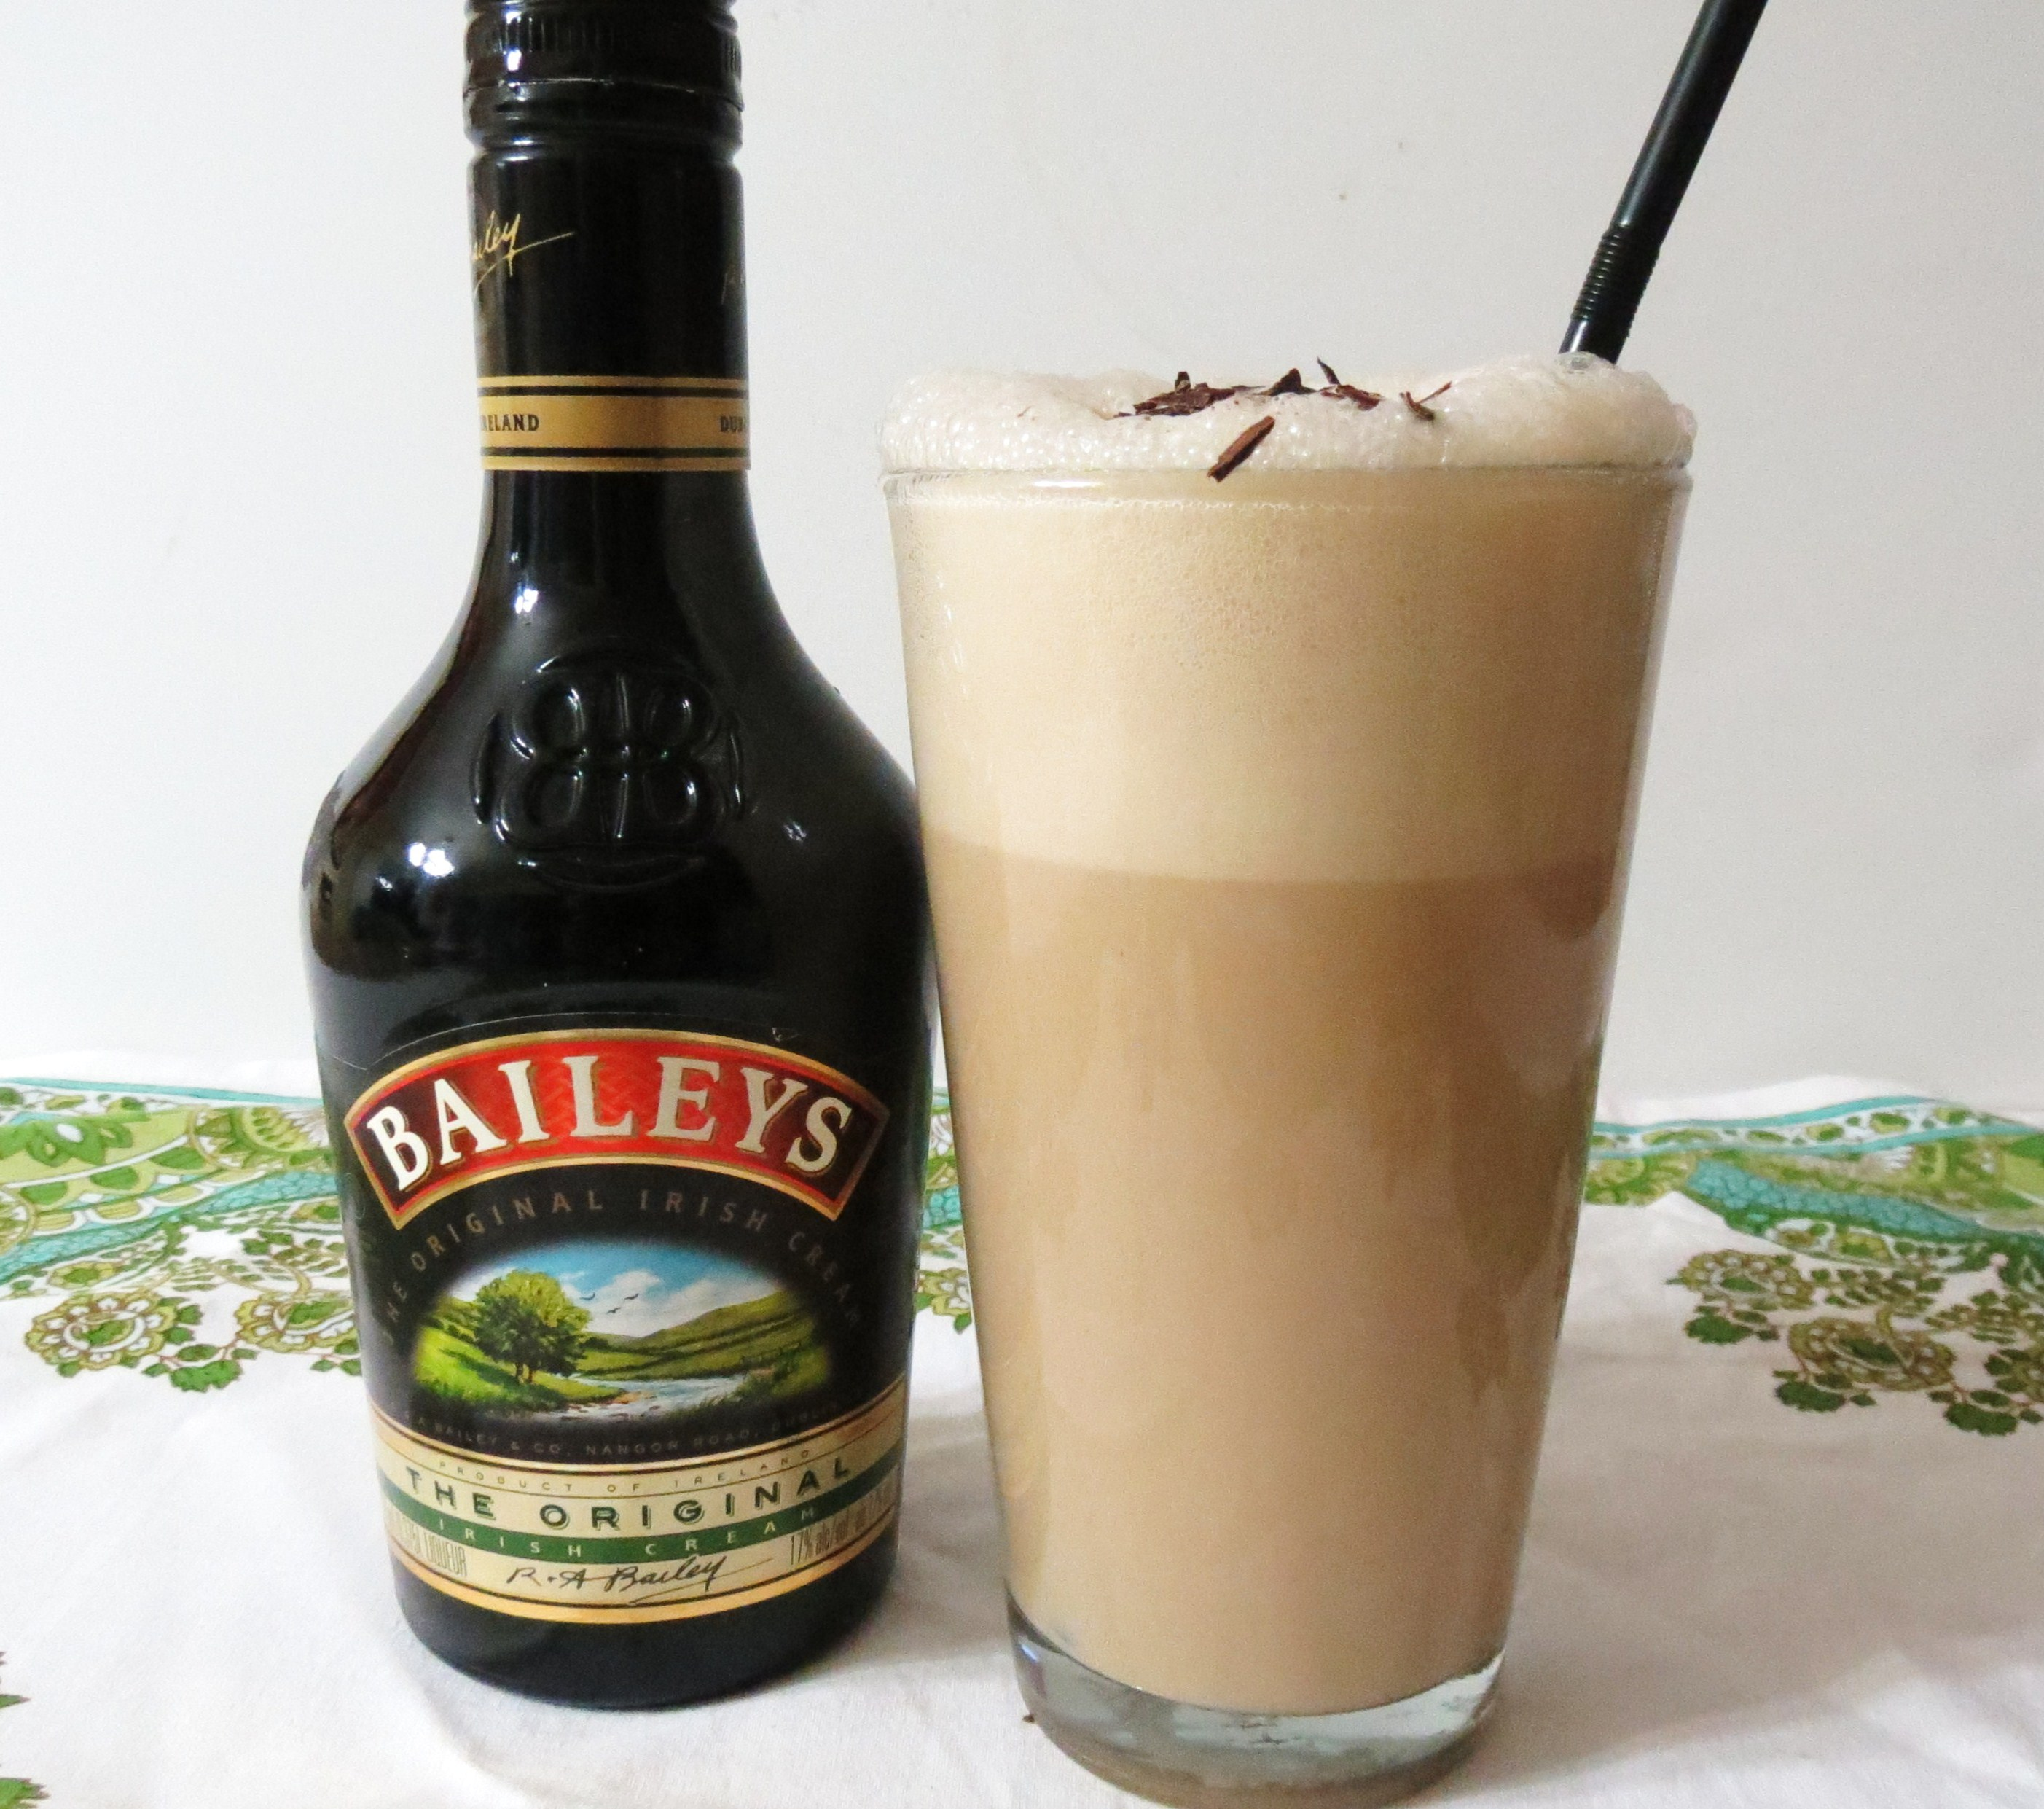 Bailey's Irish Cream – $21.99